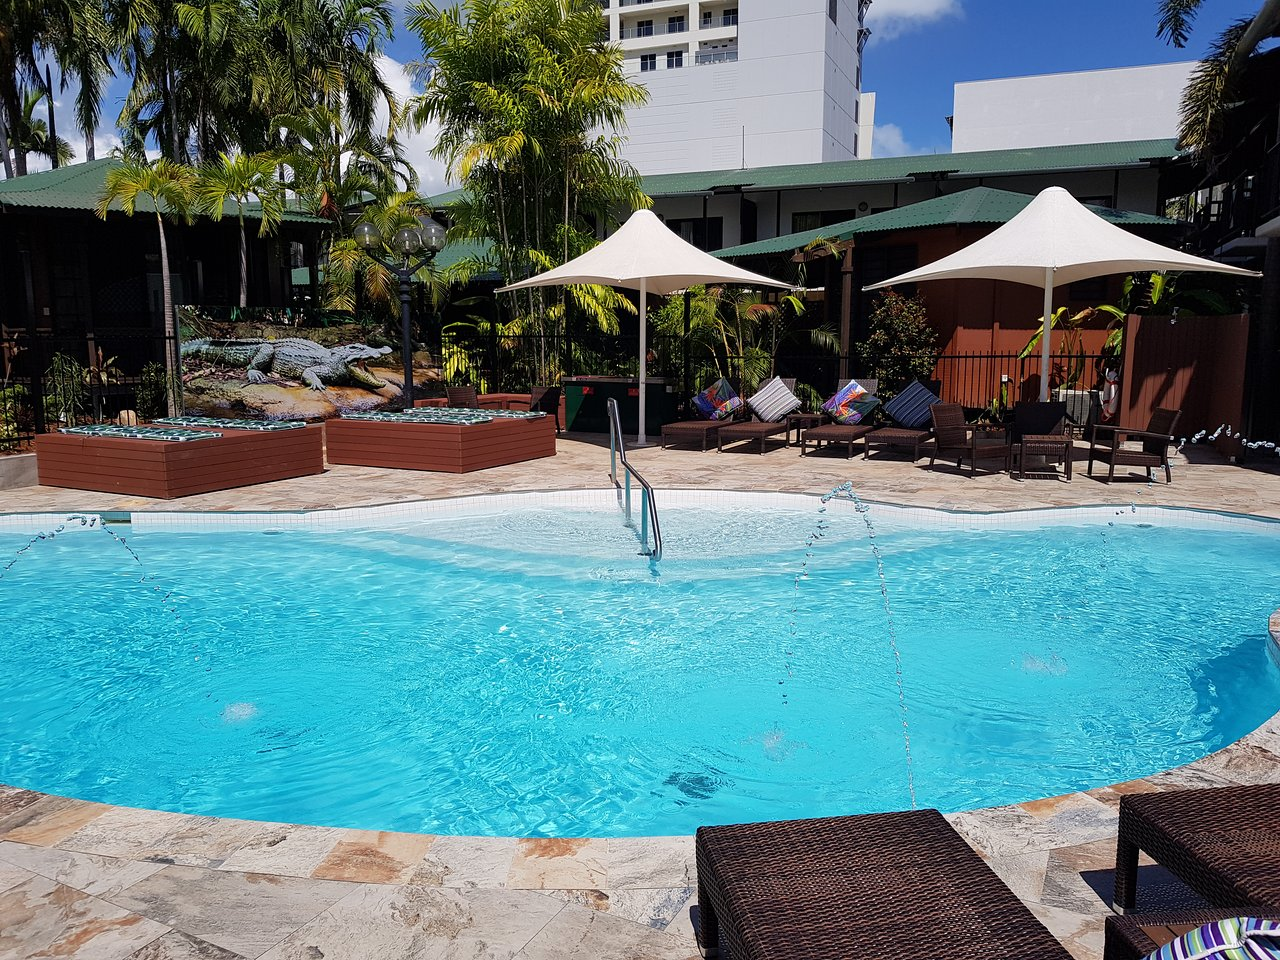 PALMS CITY RESORT - Updated 2019 Prices, Hotel Reviews, and ... on sunset strip hotel map, pasadena hotel map, venetian hotel map, conrad miami hotel map, mohegan sun hotel map, tropicana hotel map, suncoast hotel map, new york new york hotel map, circus circus las vegas hotel map, santa monica hotel map, wilmington hotel map, portland hotel map, huntington beach hotel map, sands hotel map, riviera hotel map, toronto hotel map, long beach hotel map, hollywood hotel map, laguna beach hotel map, disney pop century hotel map,